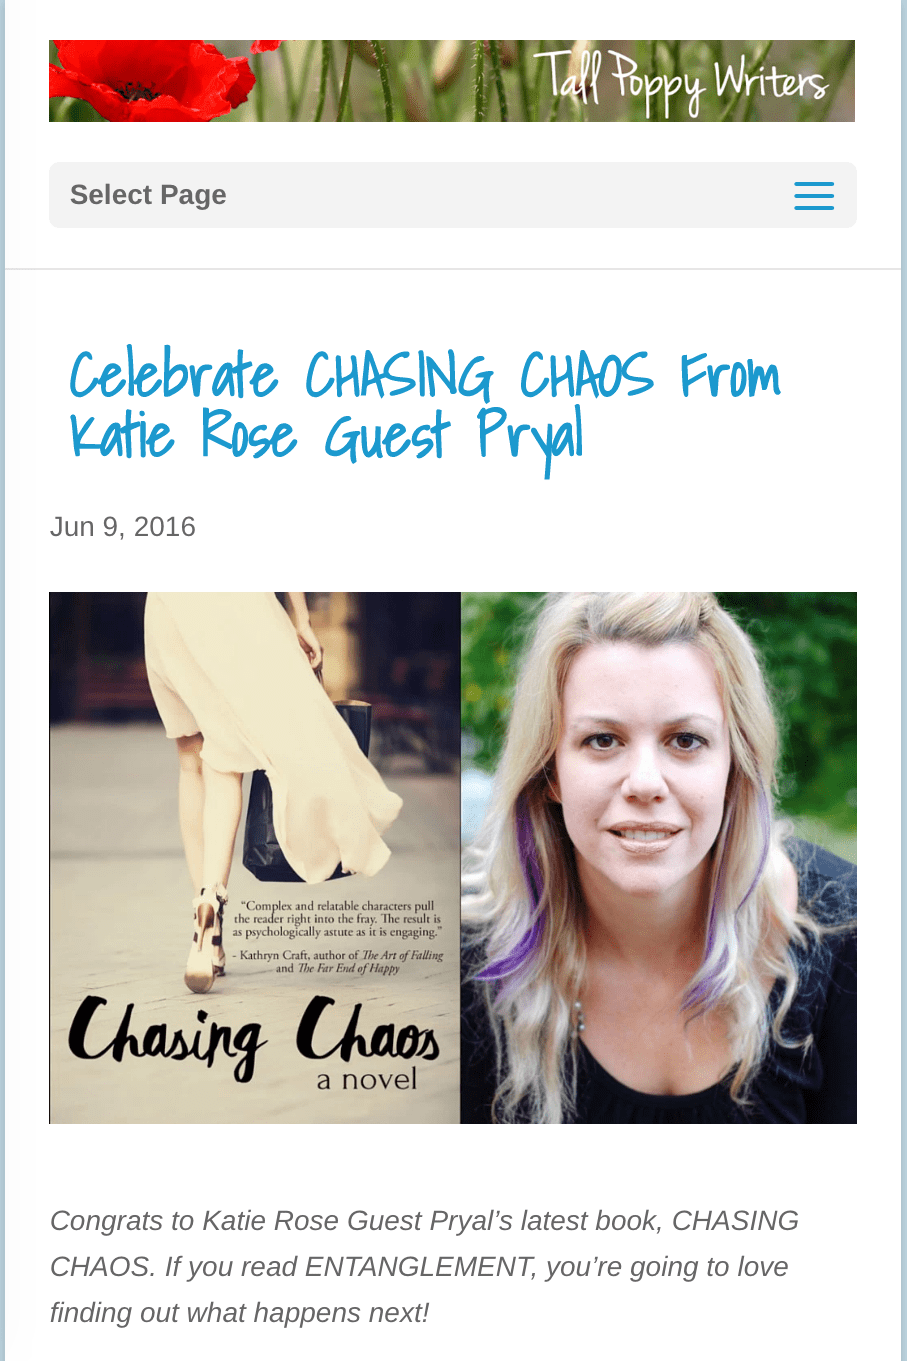 Tall Poppy Writers: CHASING CHAOS Interview & Announcement